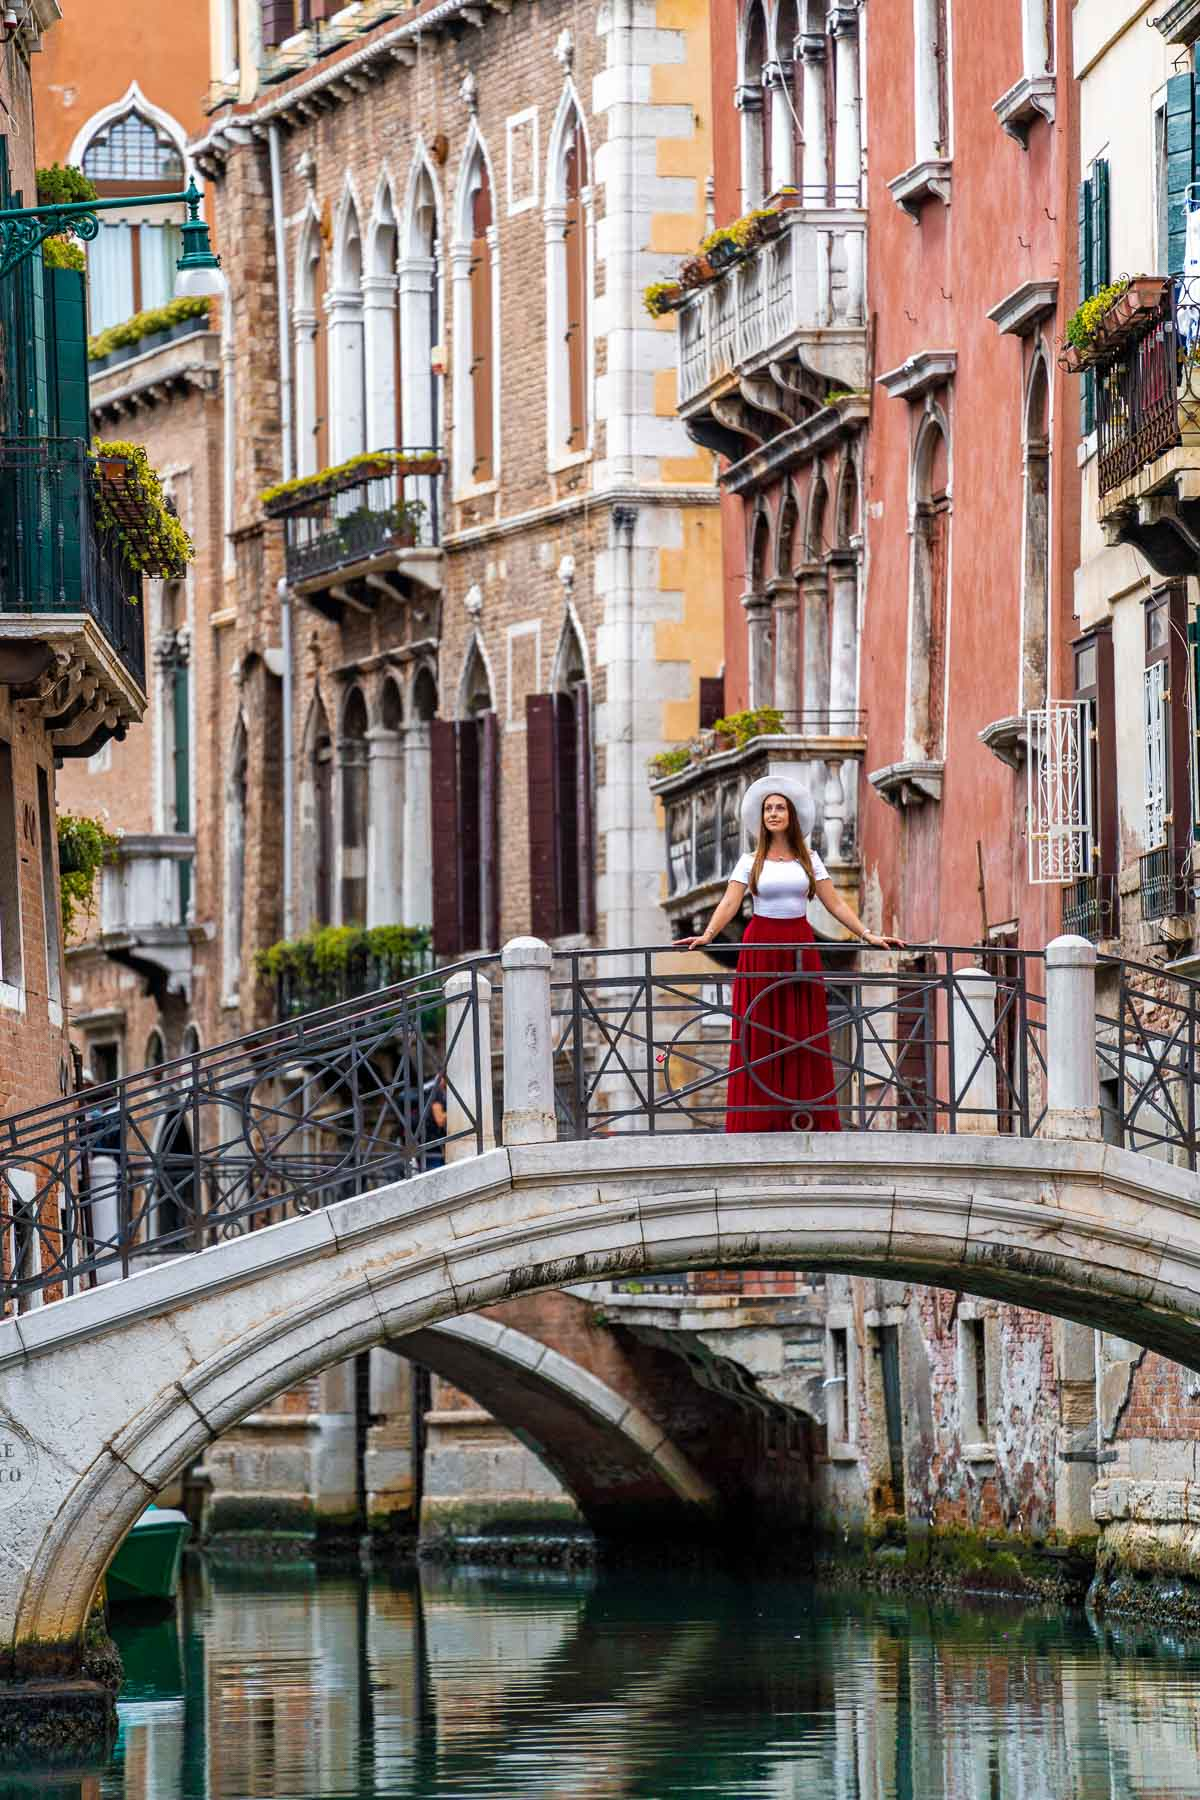 Girl in a red skirt standing on a bridge over the canals of Venice